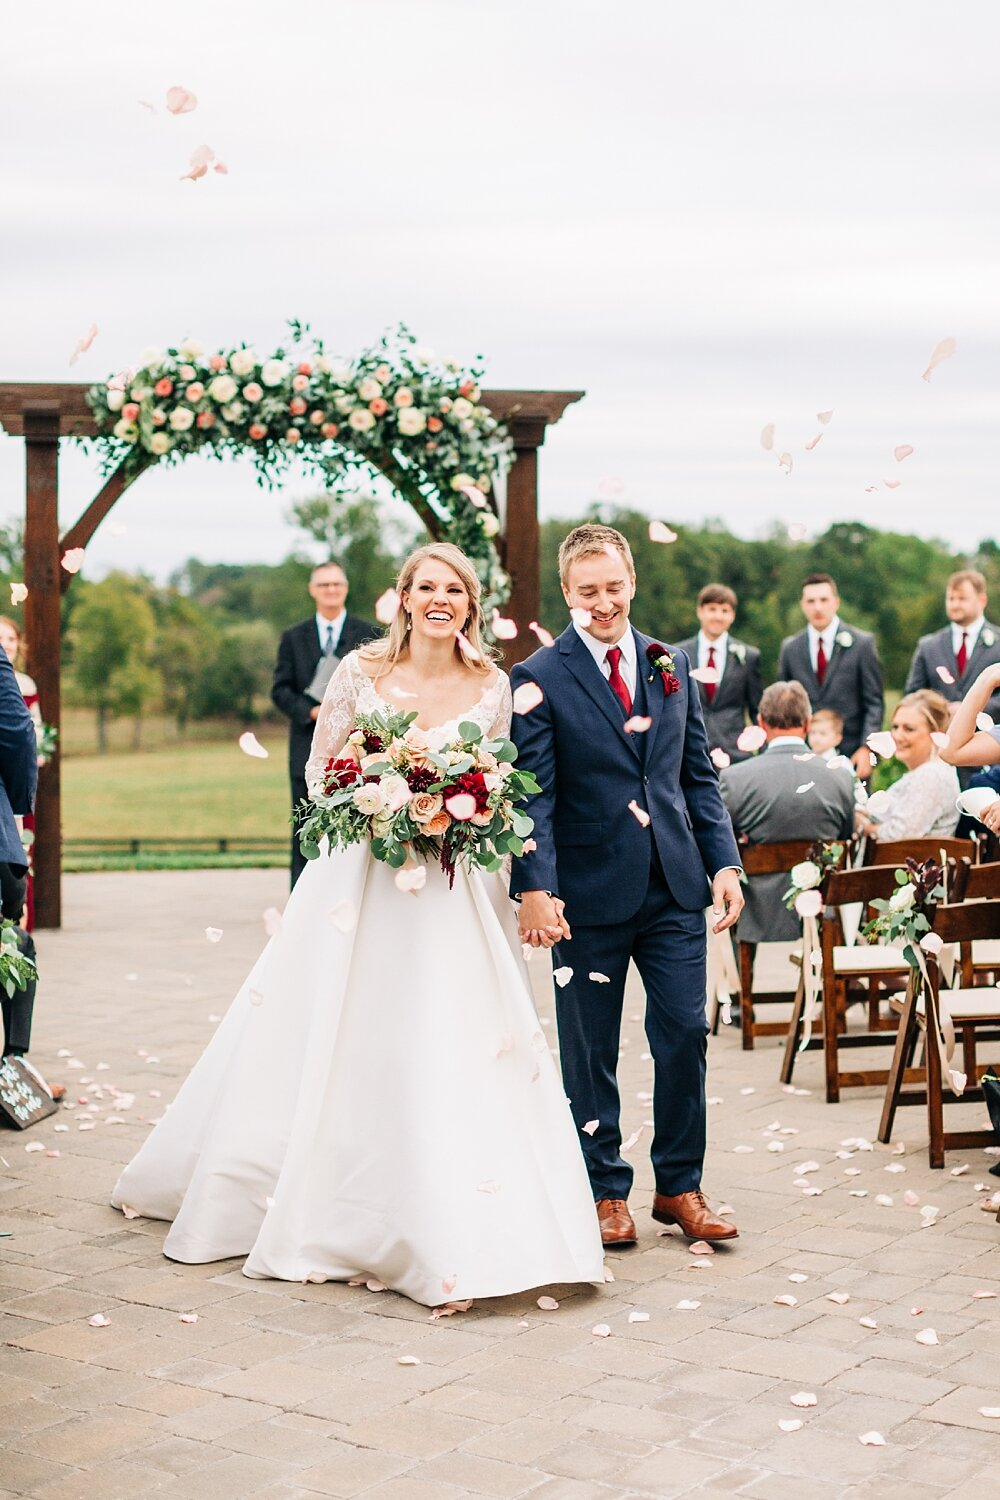 bride and groom exit their wedding ceremony with a rose petal toss